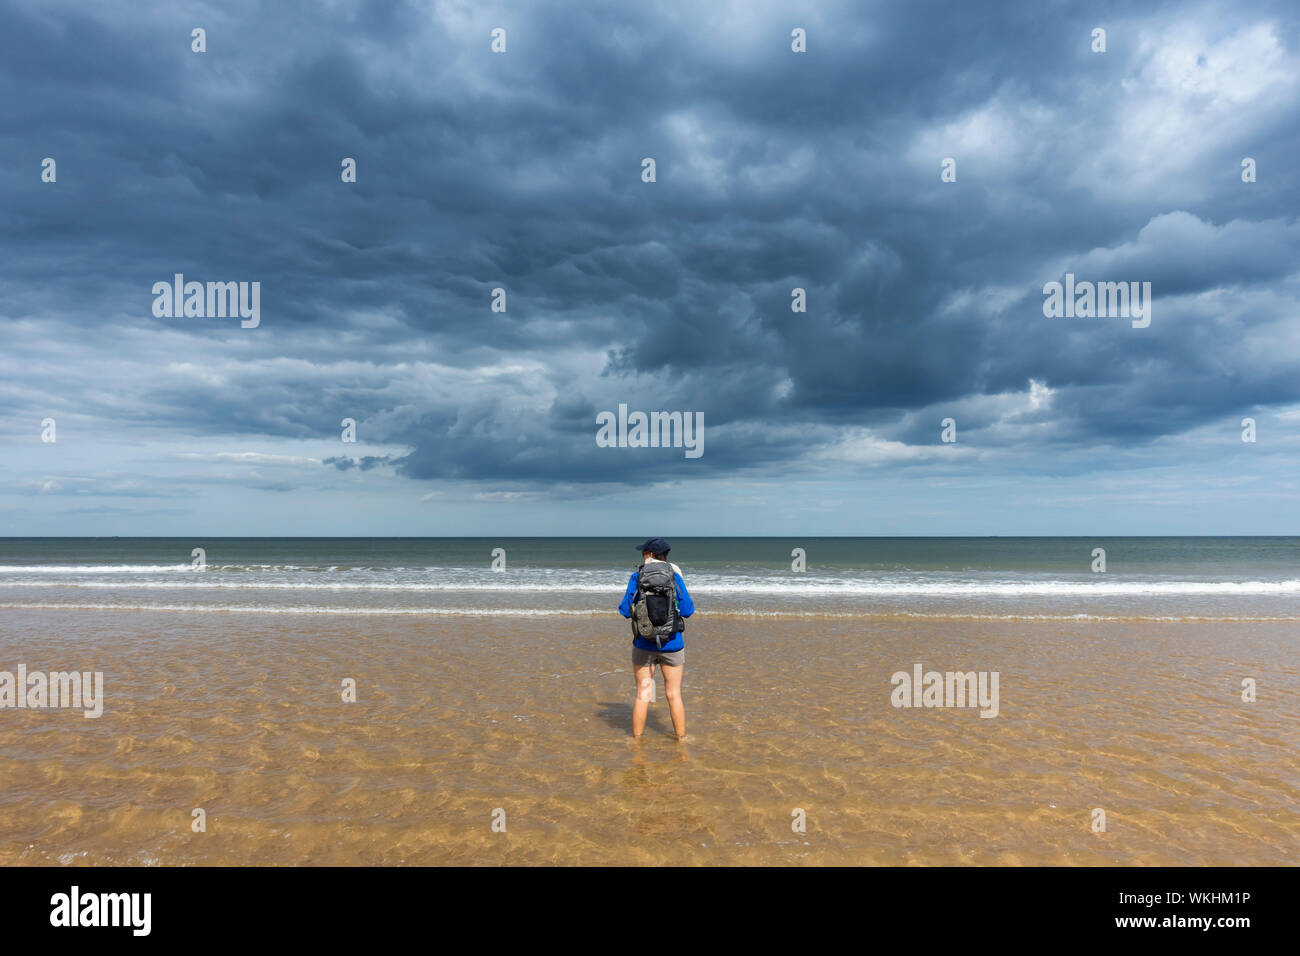 Female hiker walking on beach under a stormy sky at Saltburn on the Yorkshire coast. UK Stock Photo